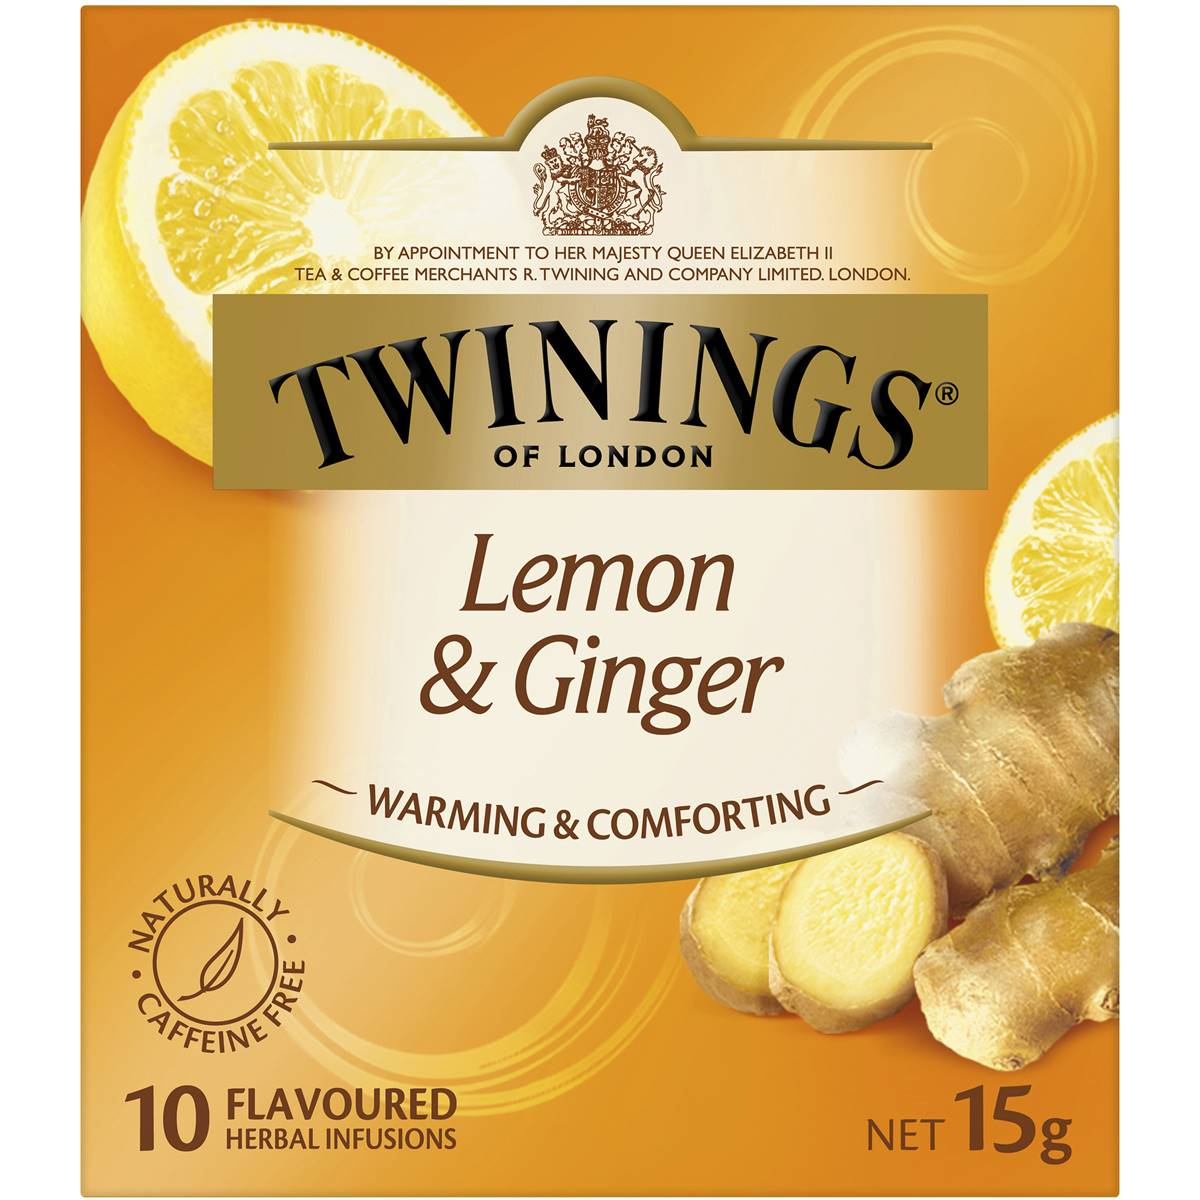 Image result for lemon and ginger twinings tea